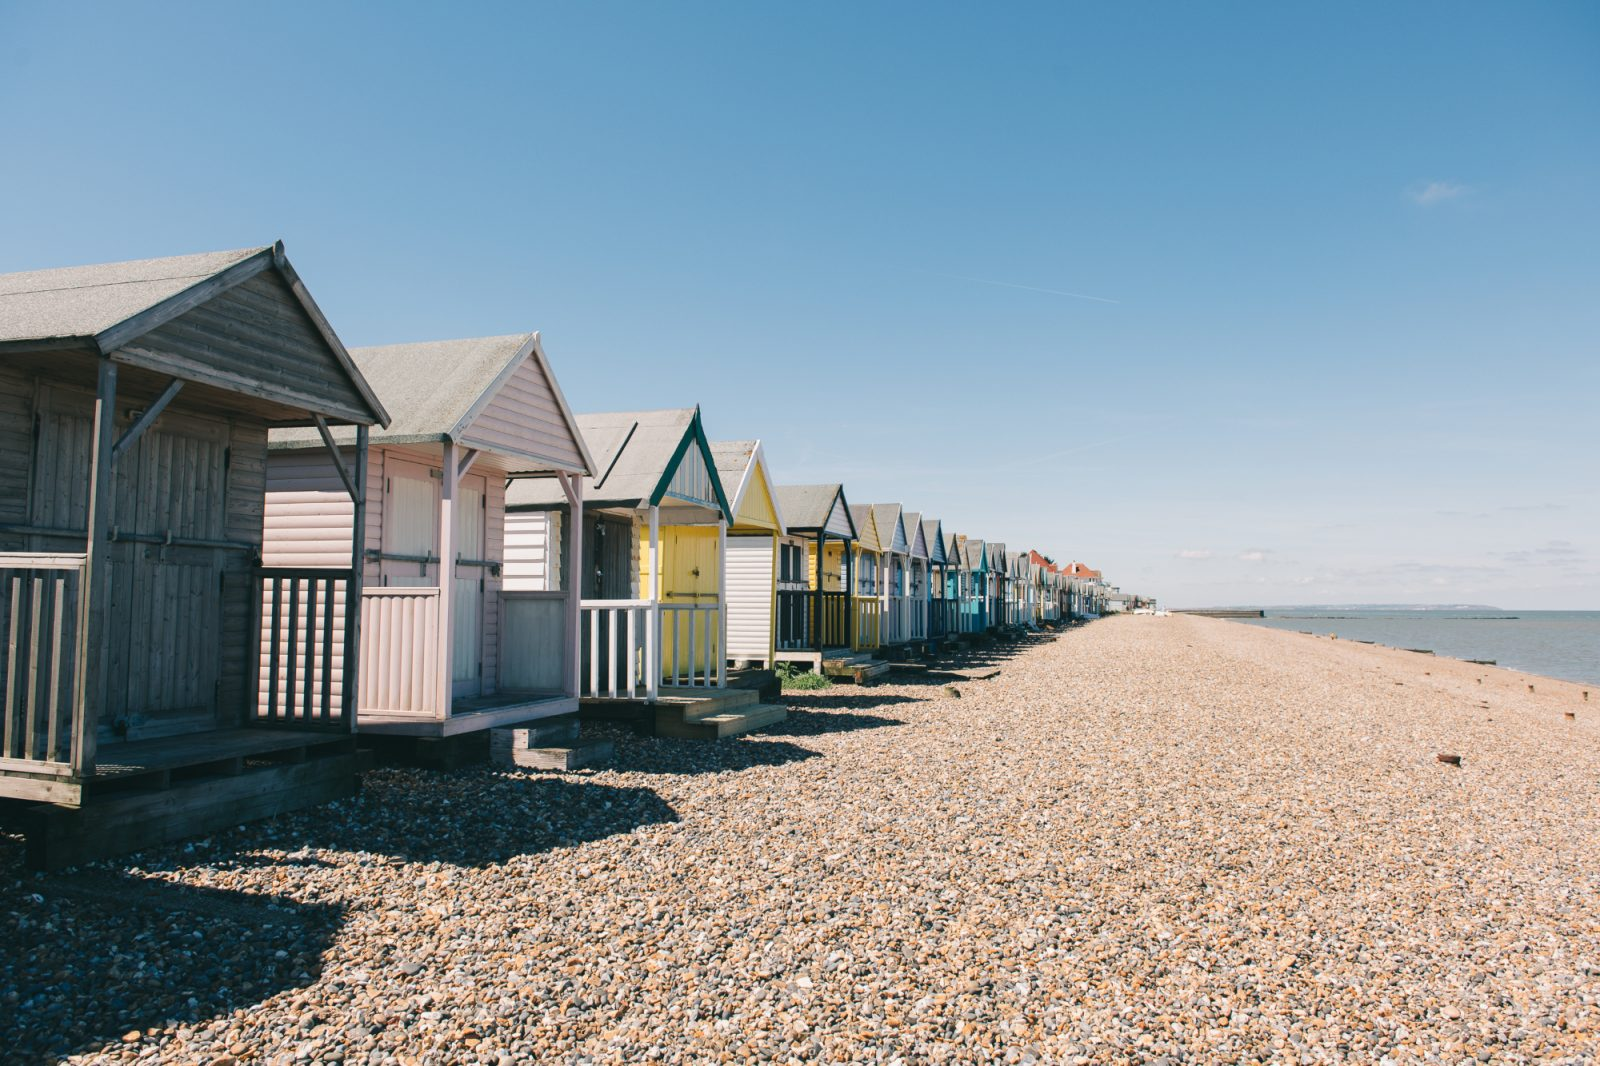 getaway tocoastal kent with the falstaff hotel in canterbury Photo credit to visit canterbury and Alex Hare photography